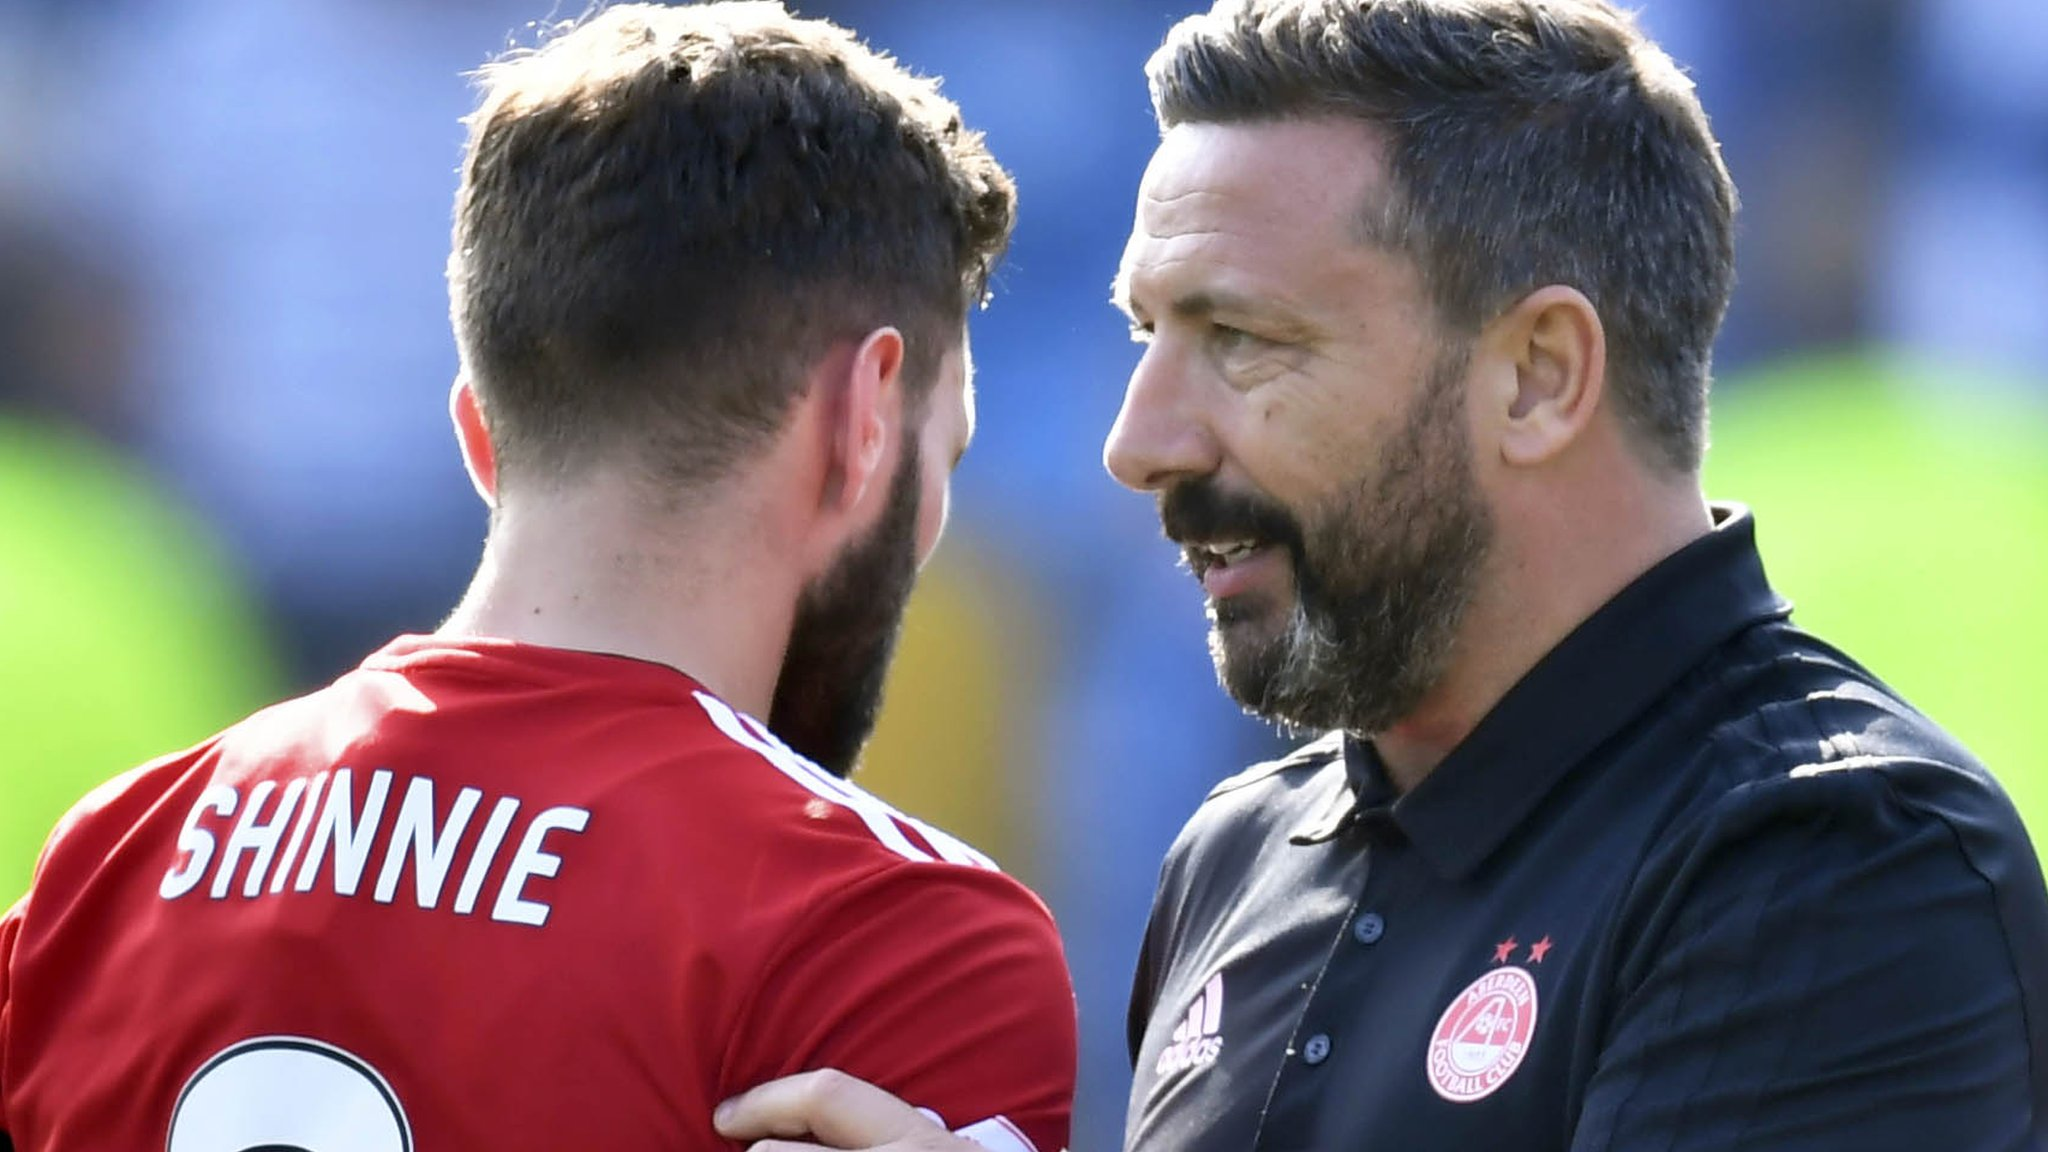 Graeme Shinnie 'extremely unlikely' to stay on at Aberdeen, admits Derek McInnes